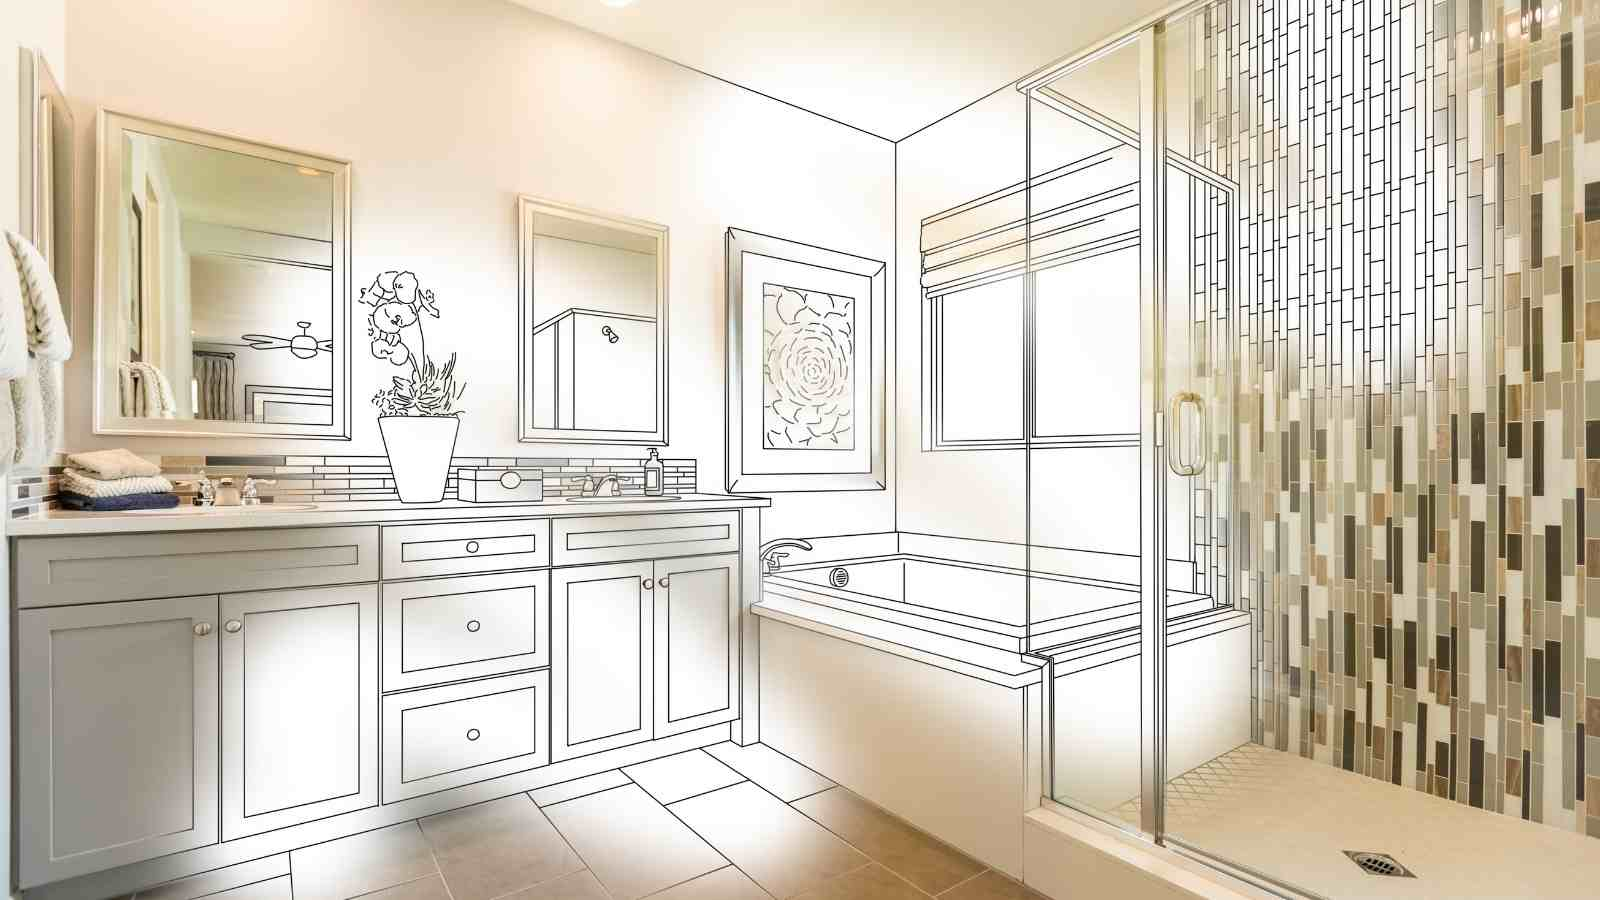 35 amazing bathroom remodel diy ideas that give a stunning for Bathroom renovation ideas pictures